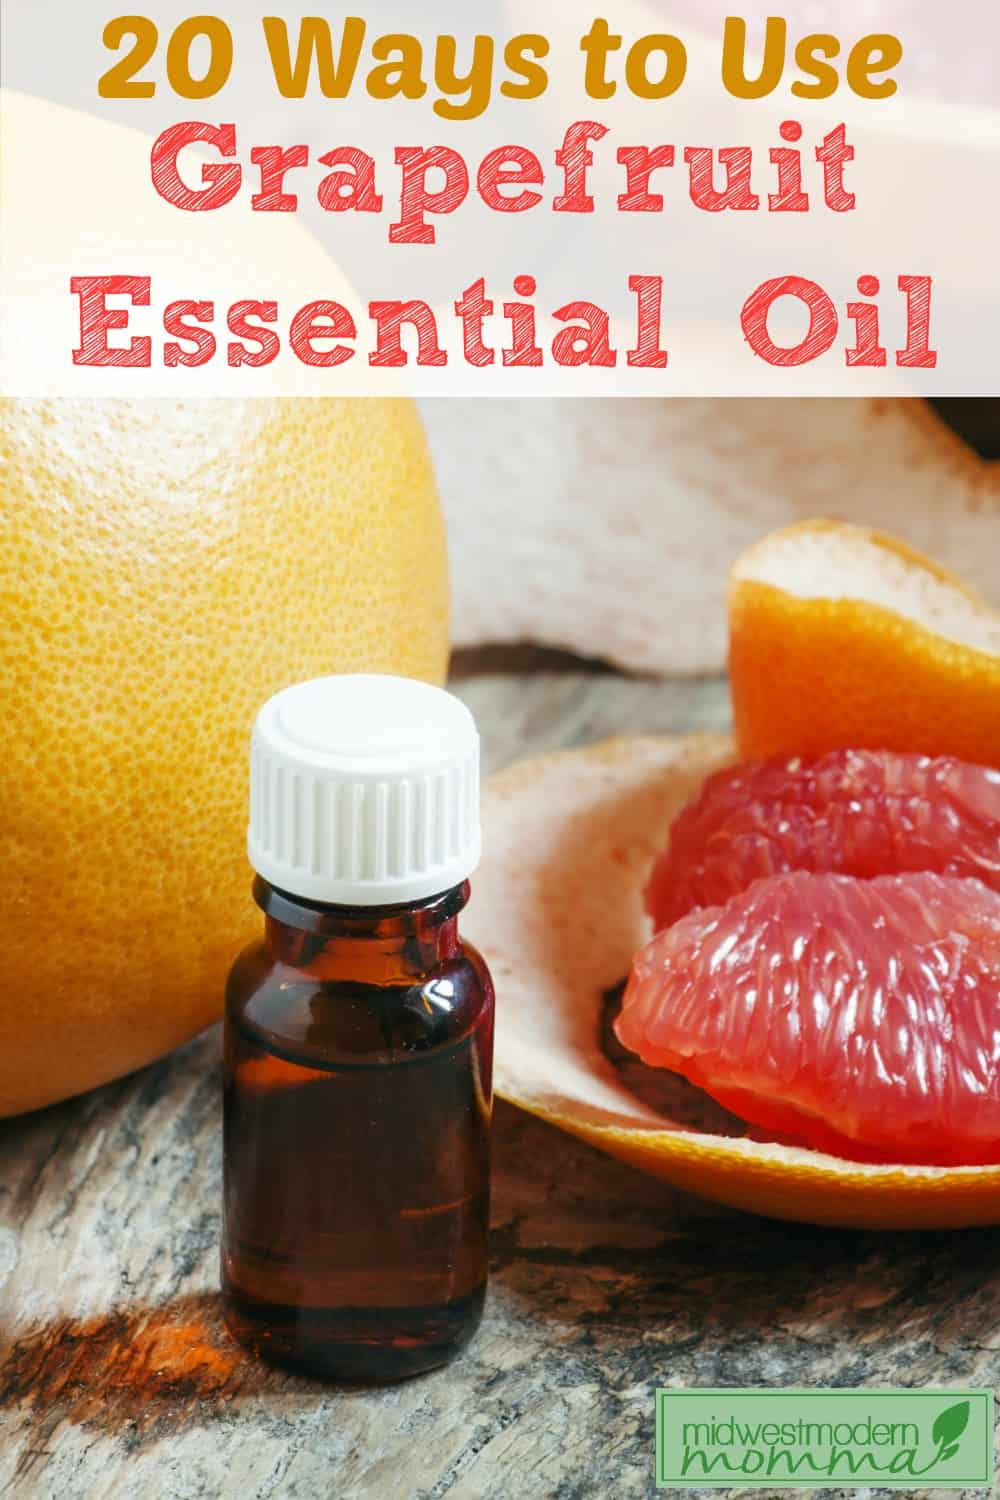 Grapefruit Essential Oil is used for everything from cellulite to anxiety from body scrubs to furniture polish! Here are my favorite 20 Grapefruit Essential Oil Uses!